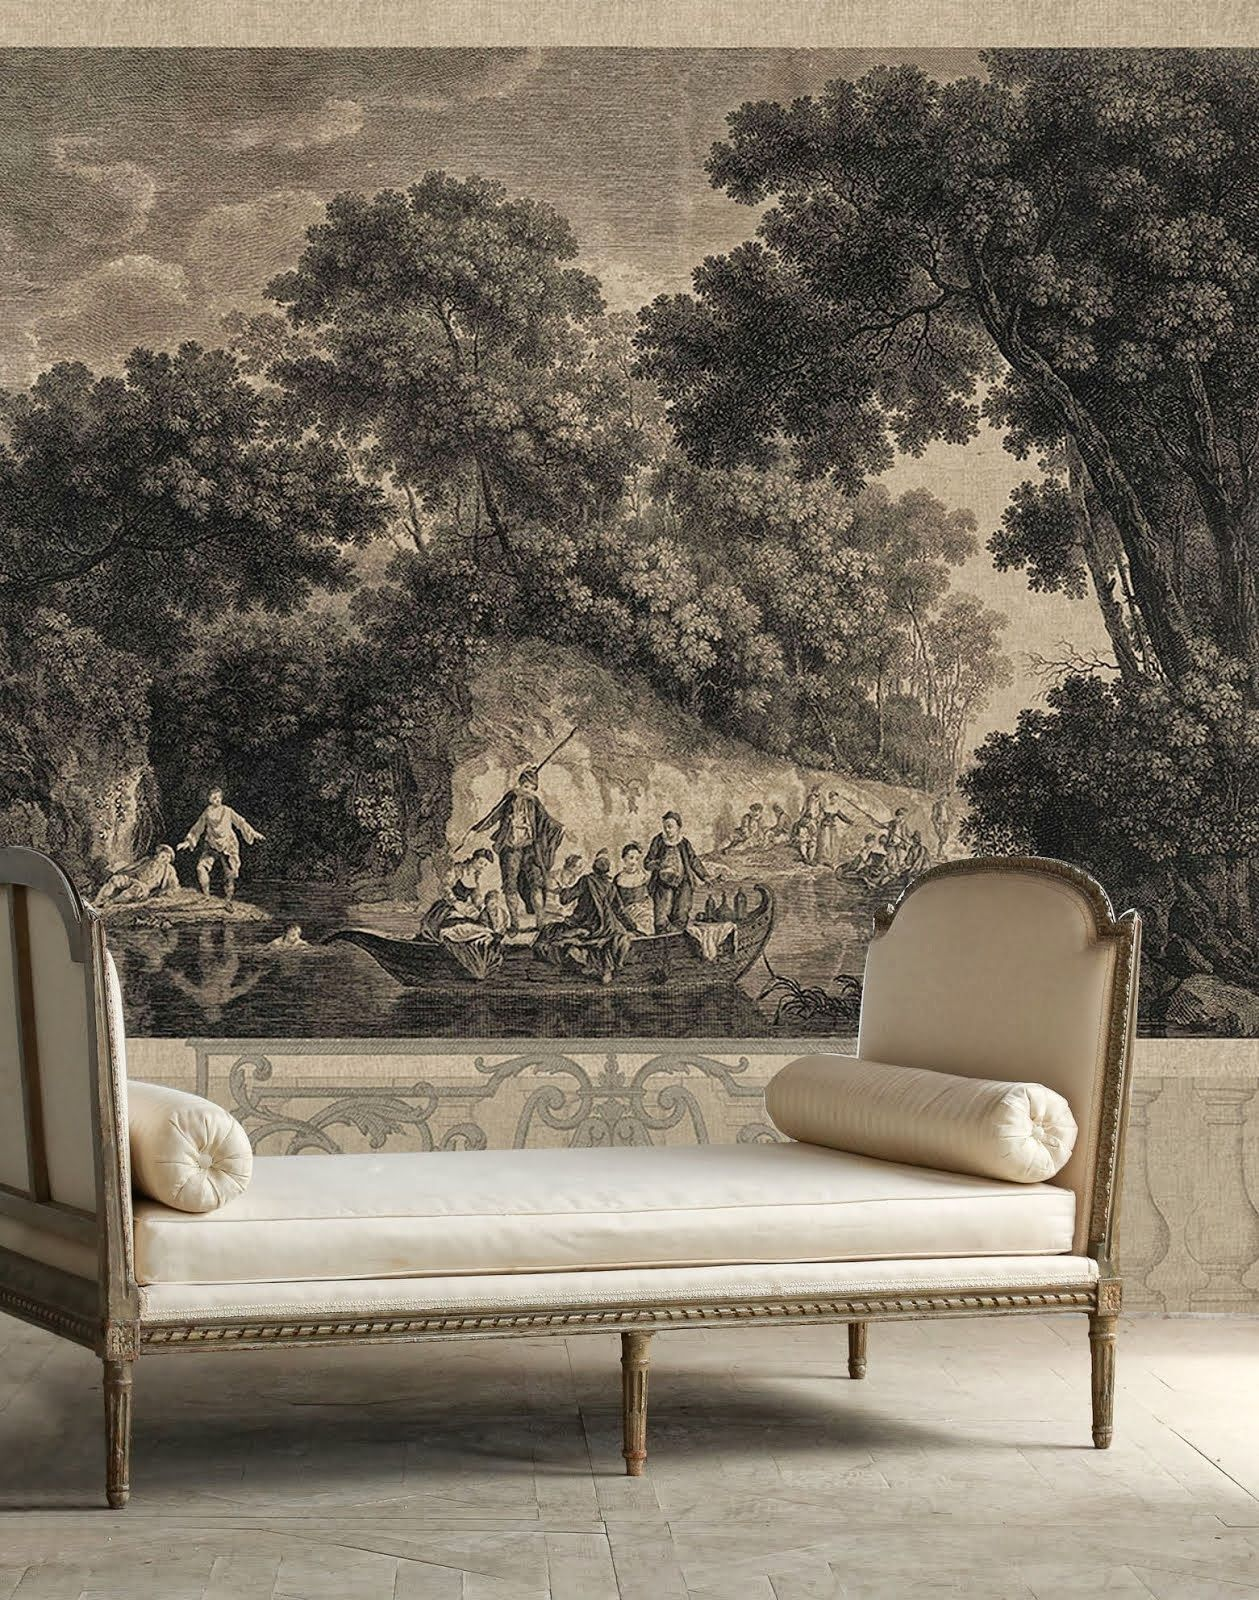 Best 25 grisaille ideas on pinterest acanthus baroque - Grisaille wallpaper ...